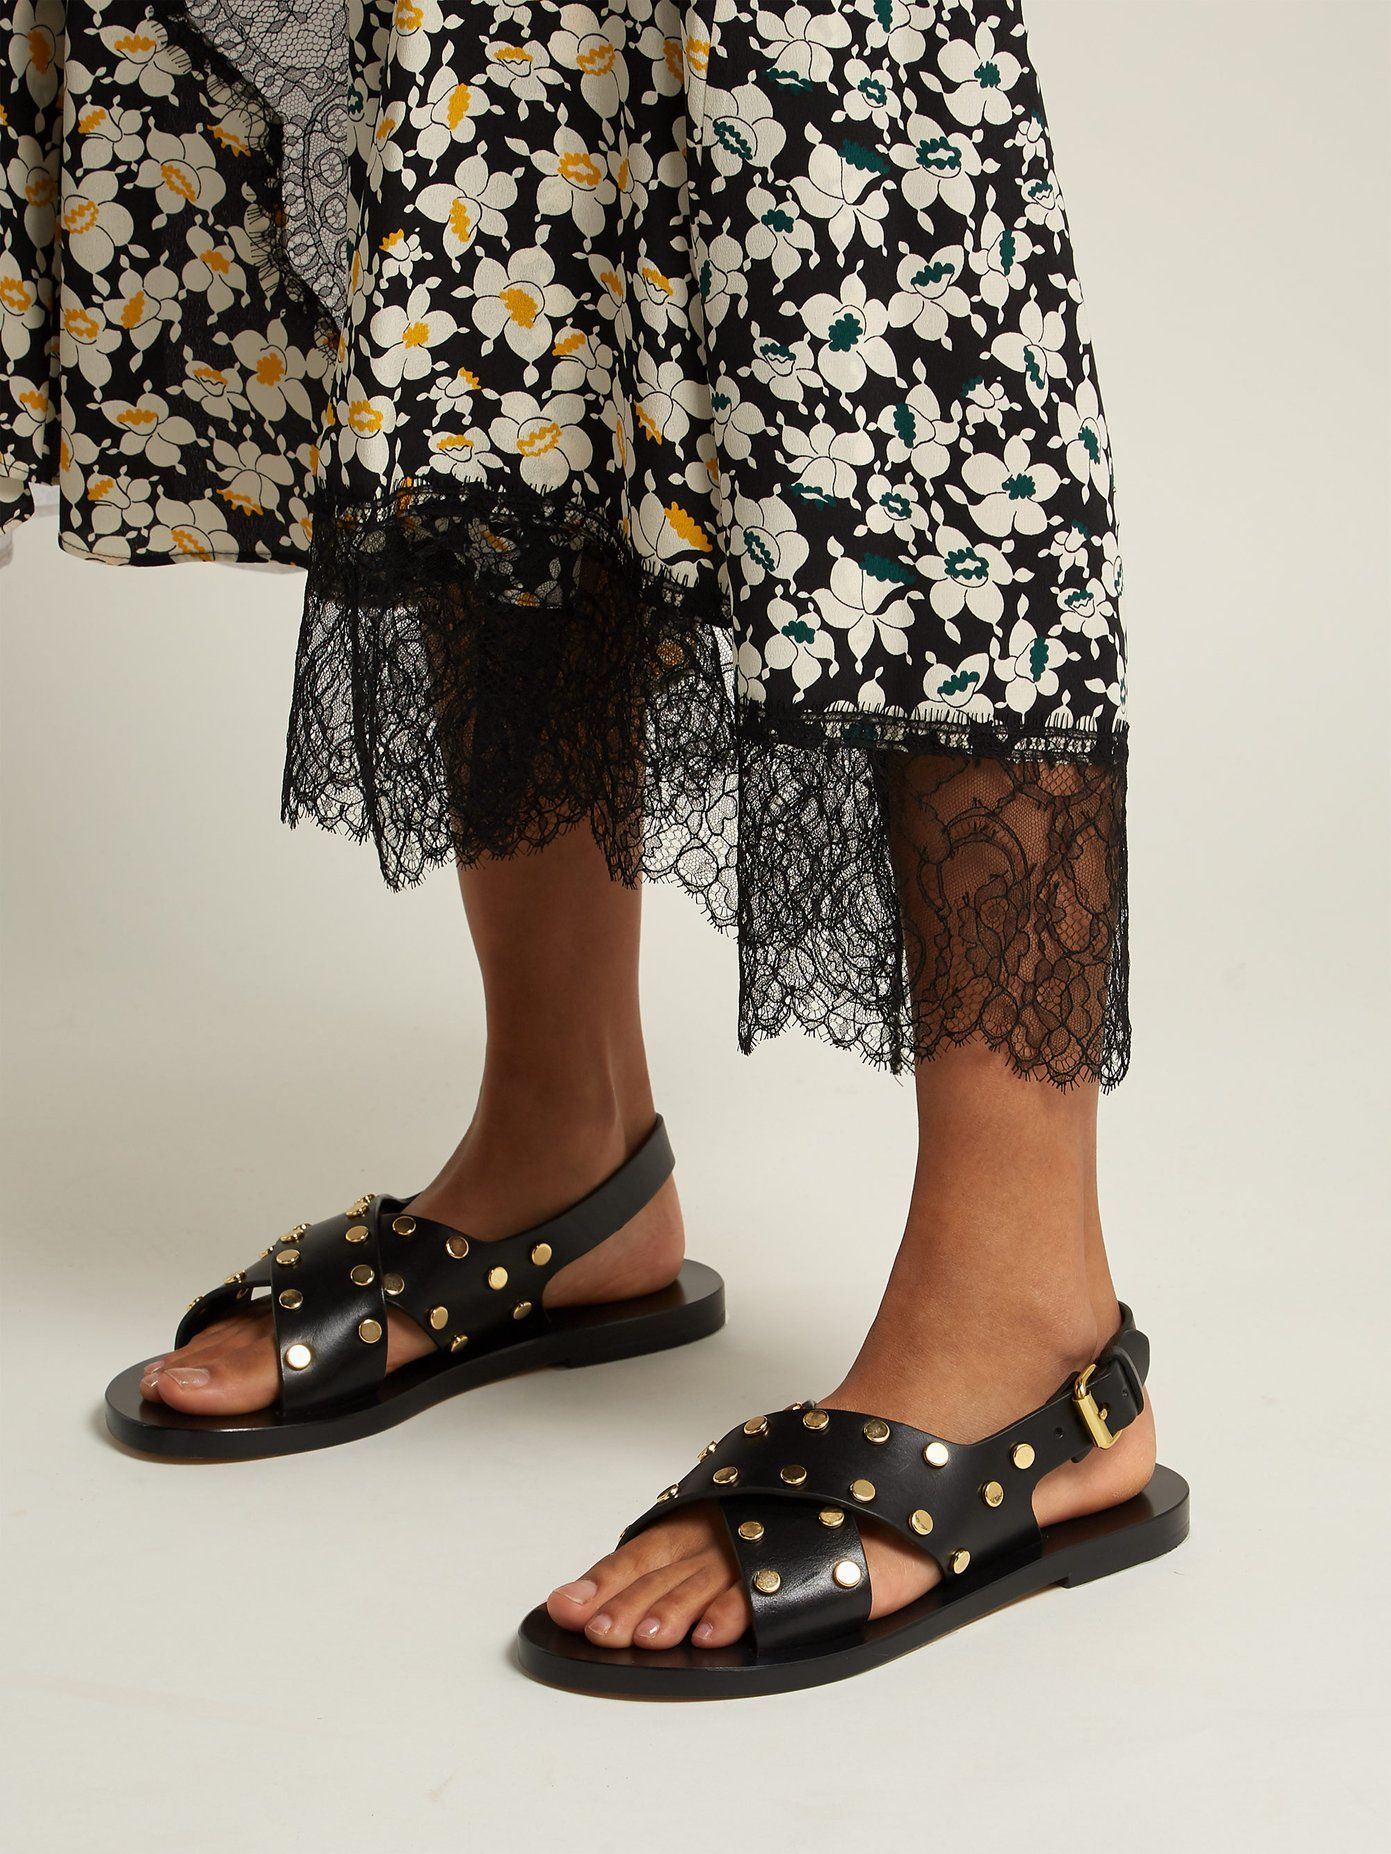 d21b51730c5 ISABEL MARANT Jane stud-embellished leather sandals - Metallic hints are  what makes this pair